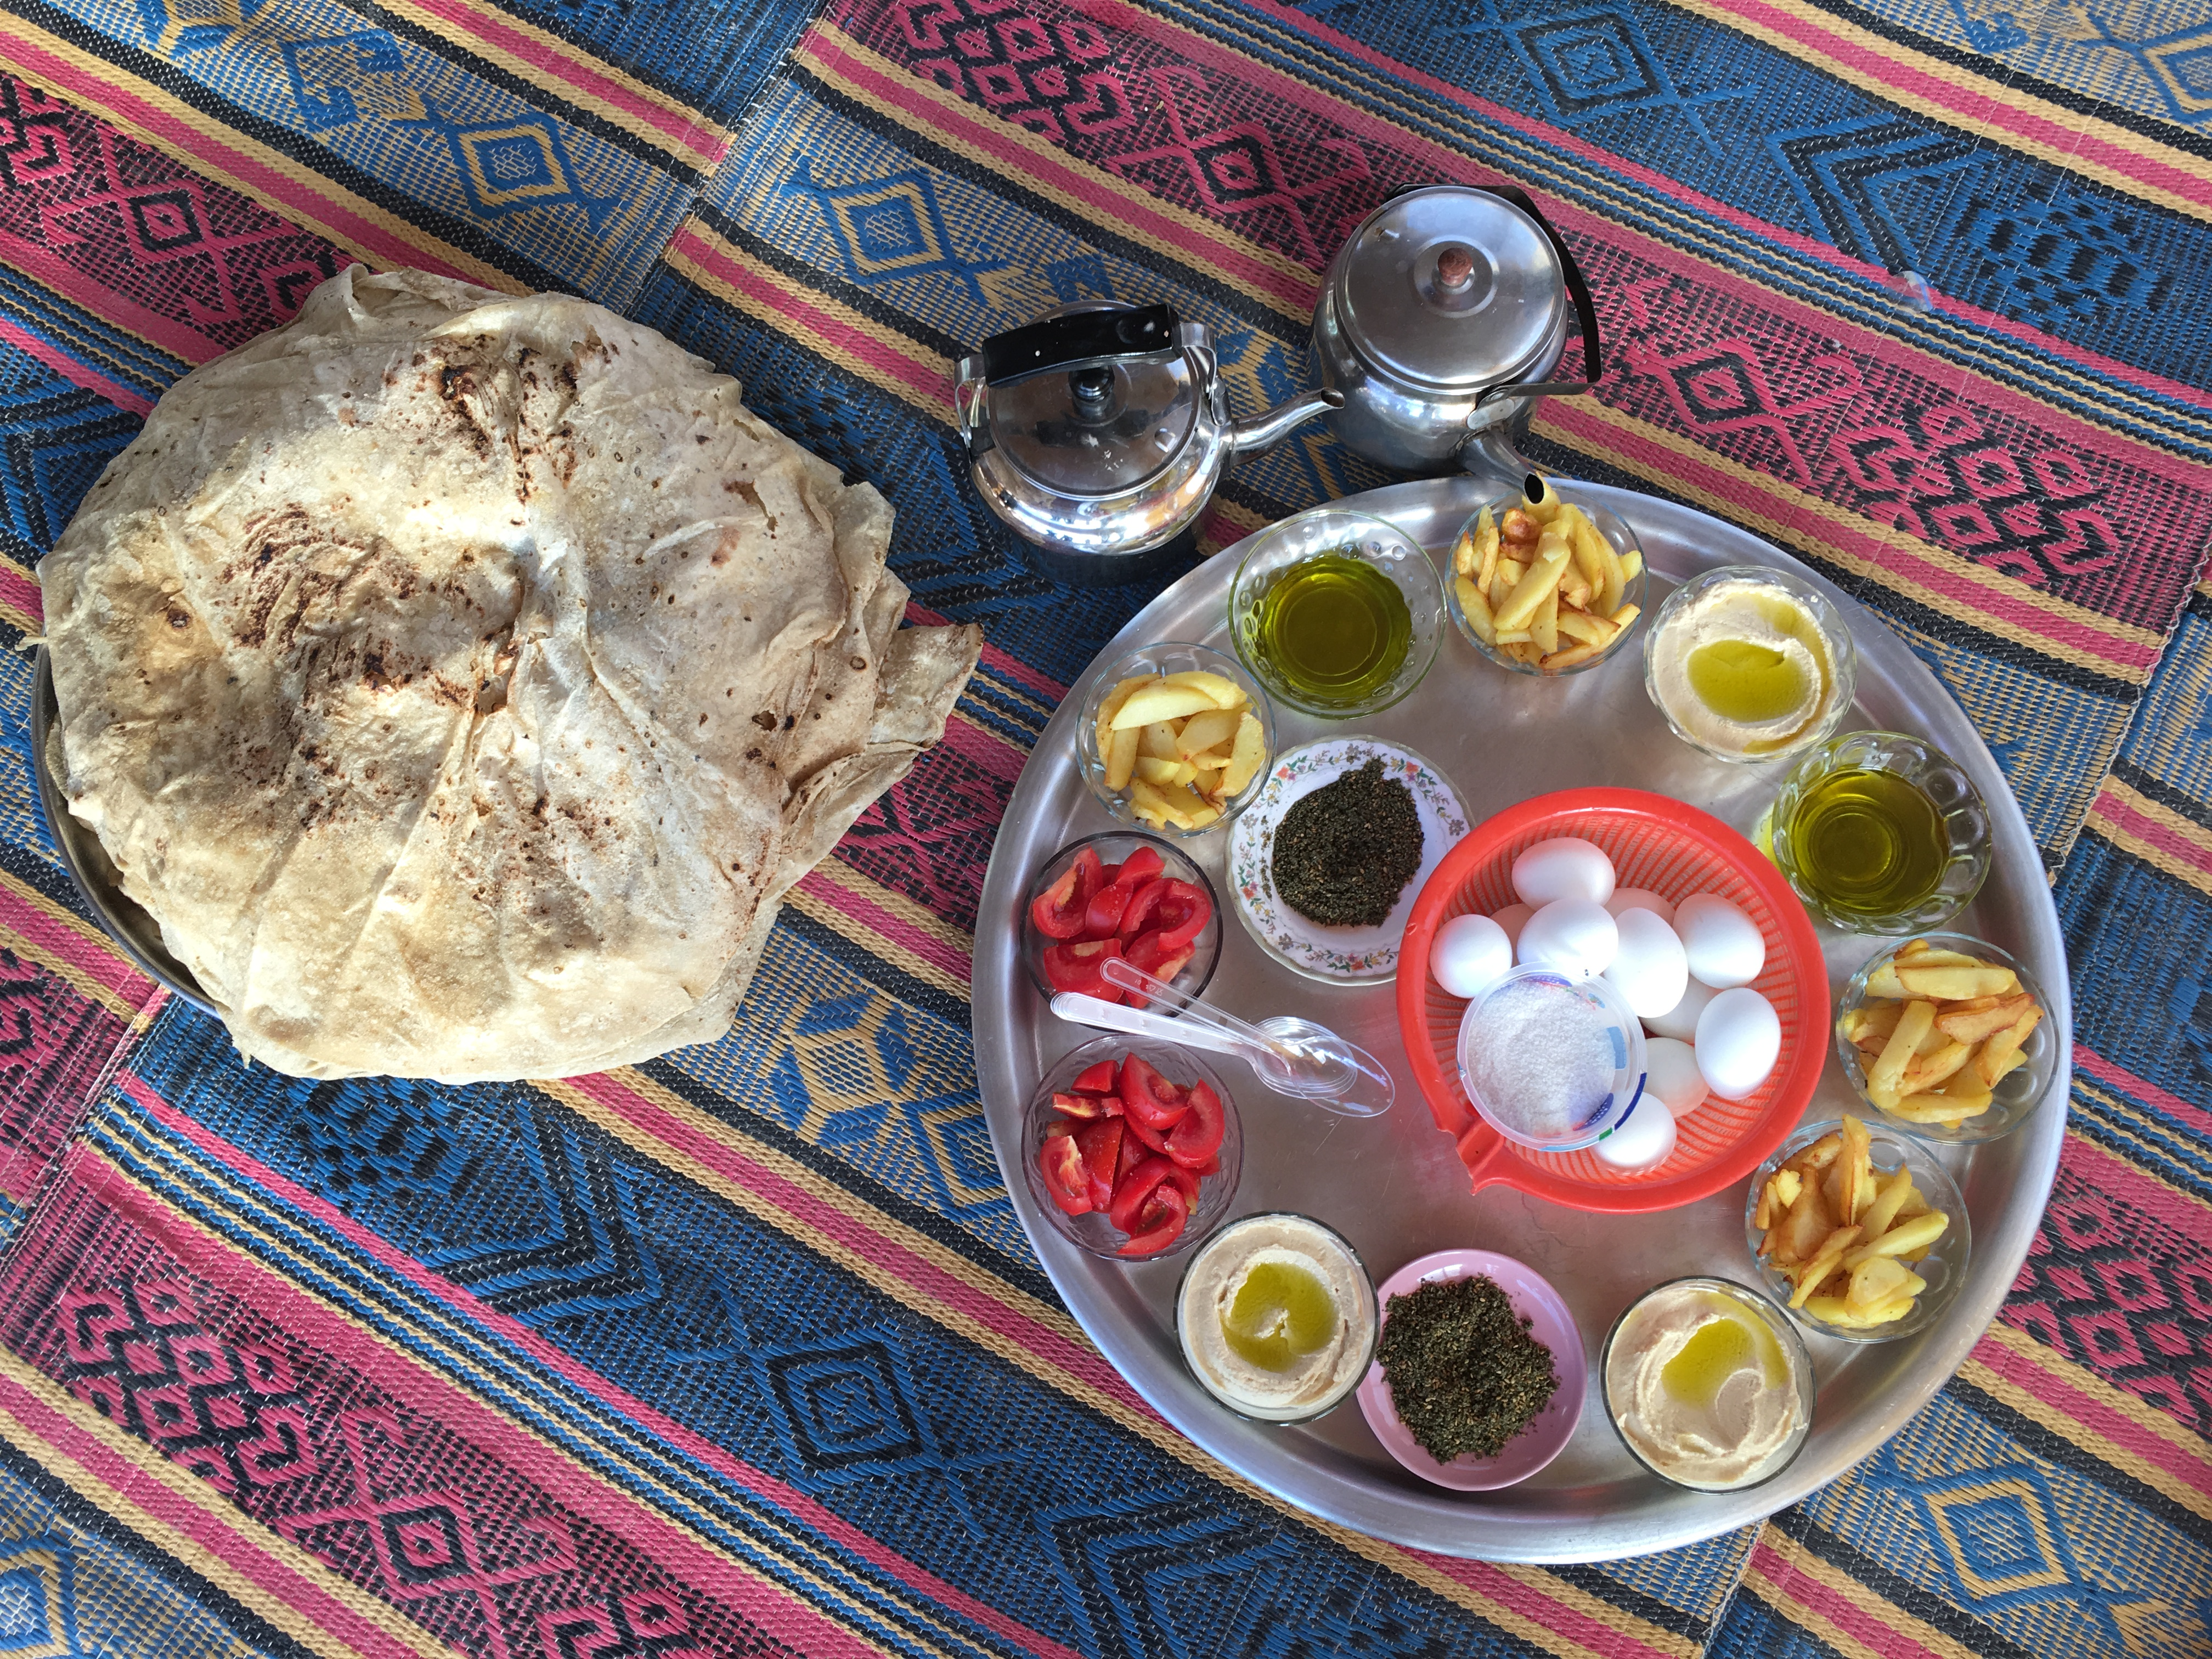 Bedouin Food, Community, Hiking, Palestine, Crooked Compass